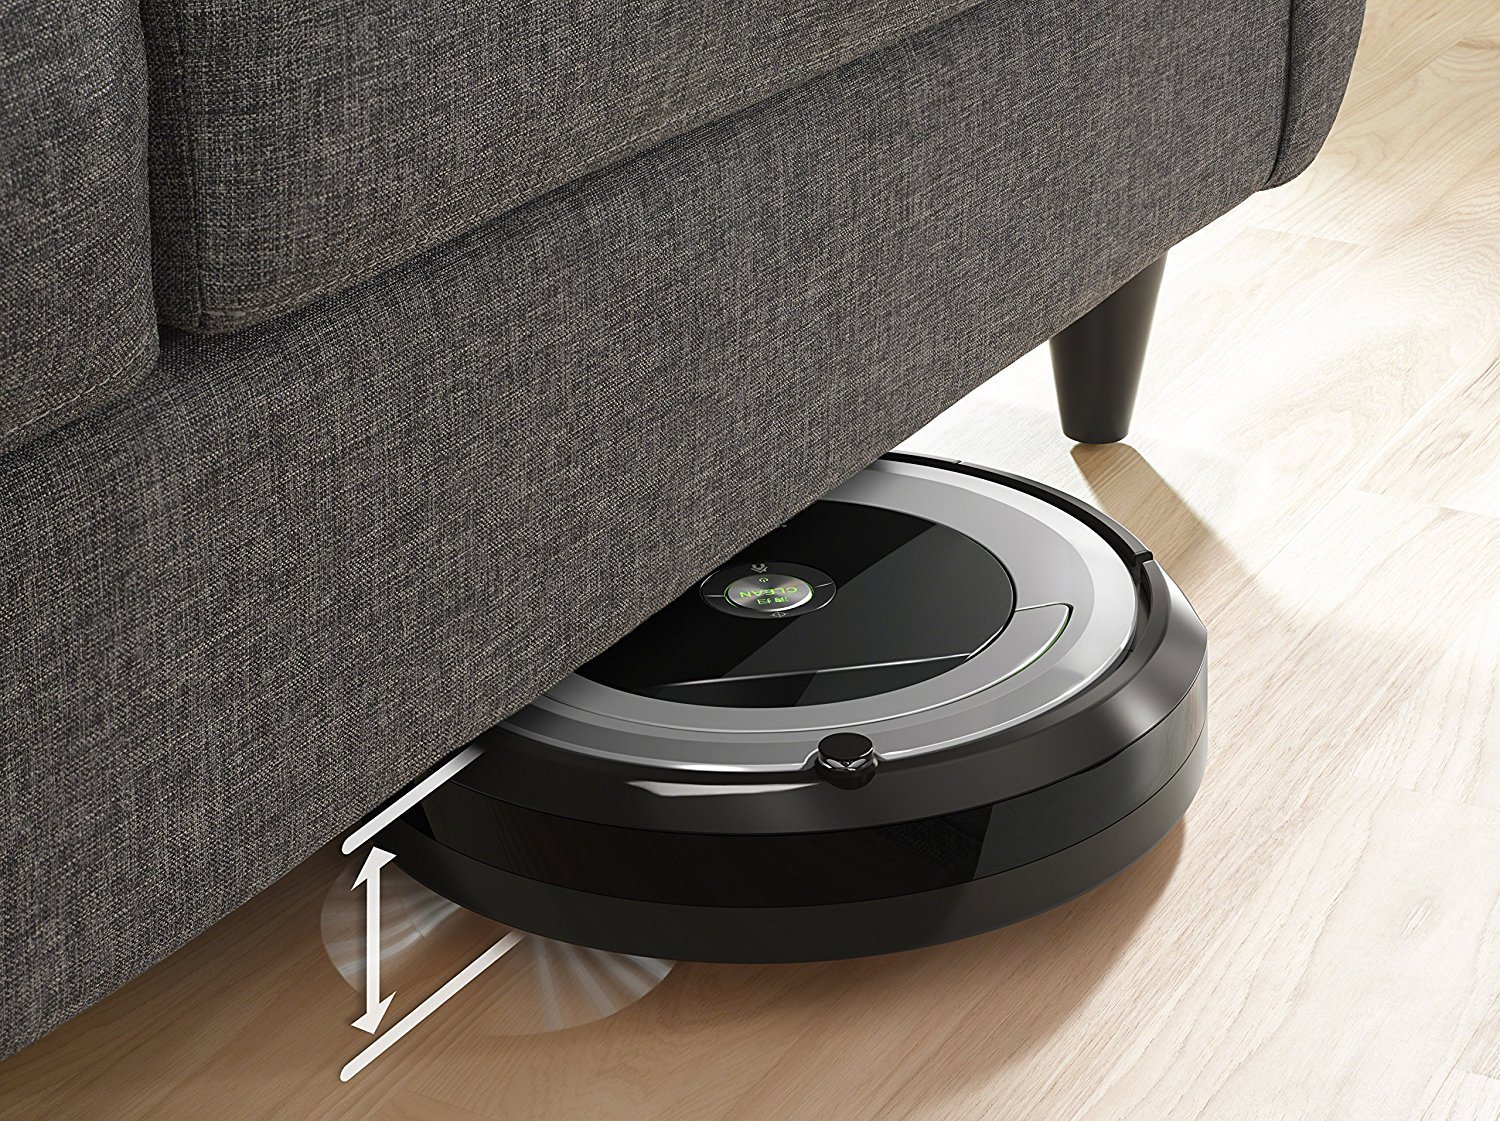 iRobot Roomba 690 Wi-Fi Connected Robotic Vacuum Cleaner + 1 Dual Mode Virtual Wall Barrier (With Batteries) + Extra Filter + More by iRobot (Image #6)